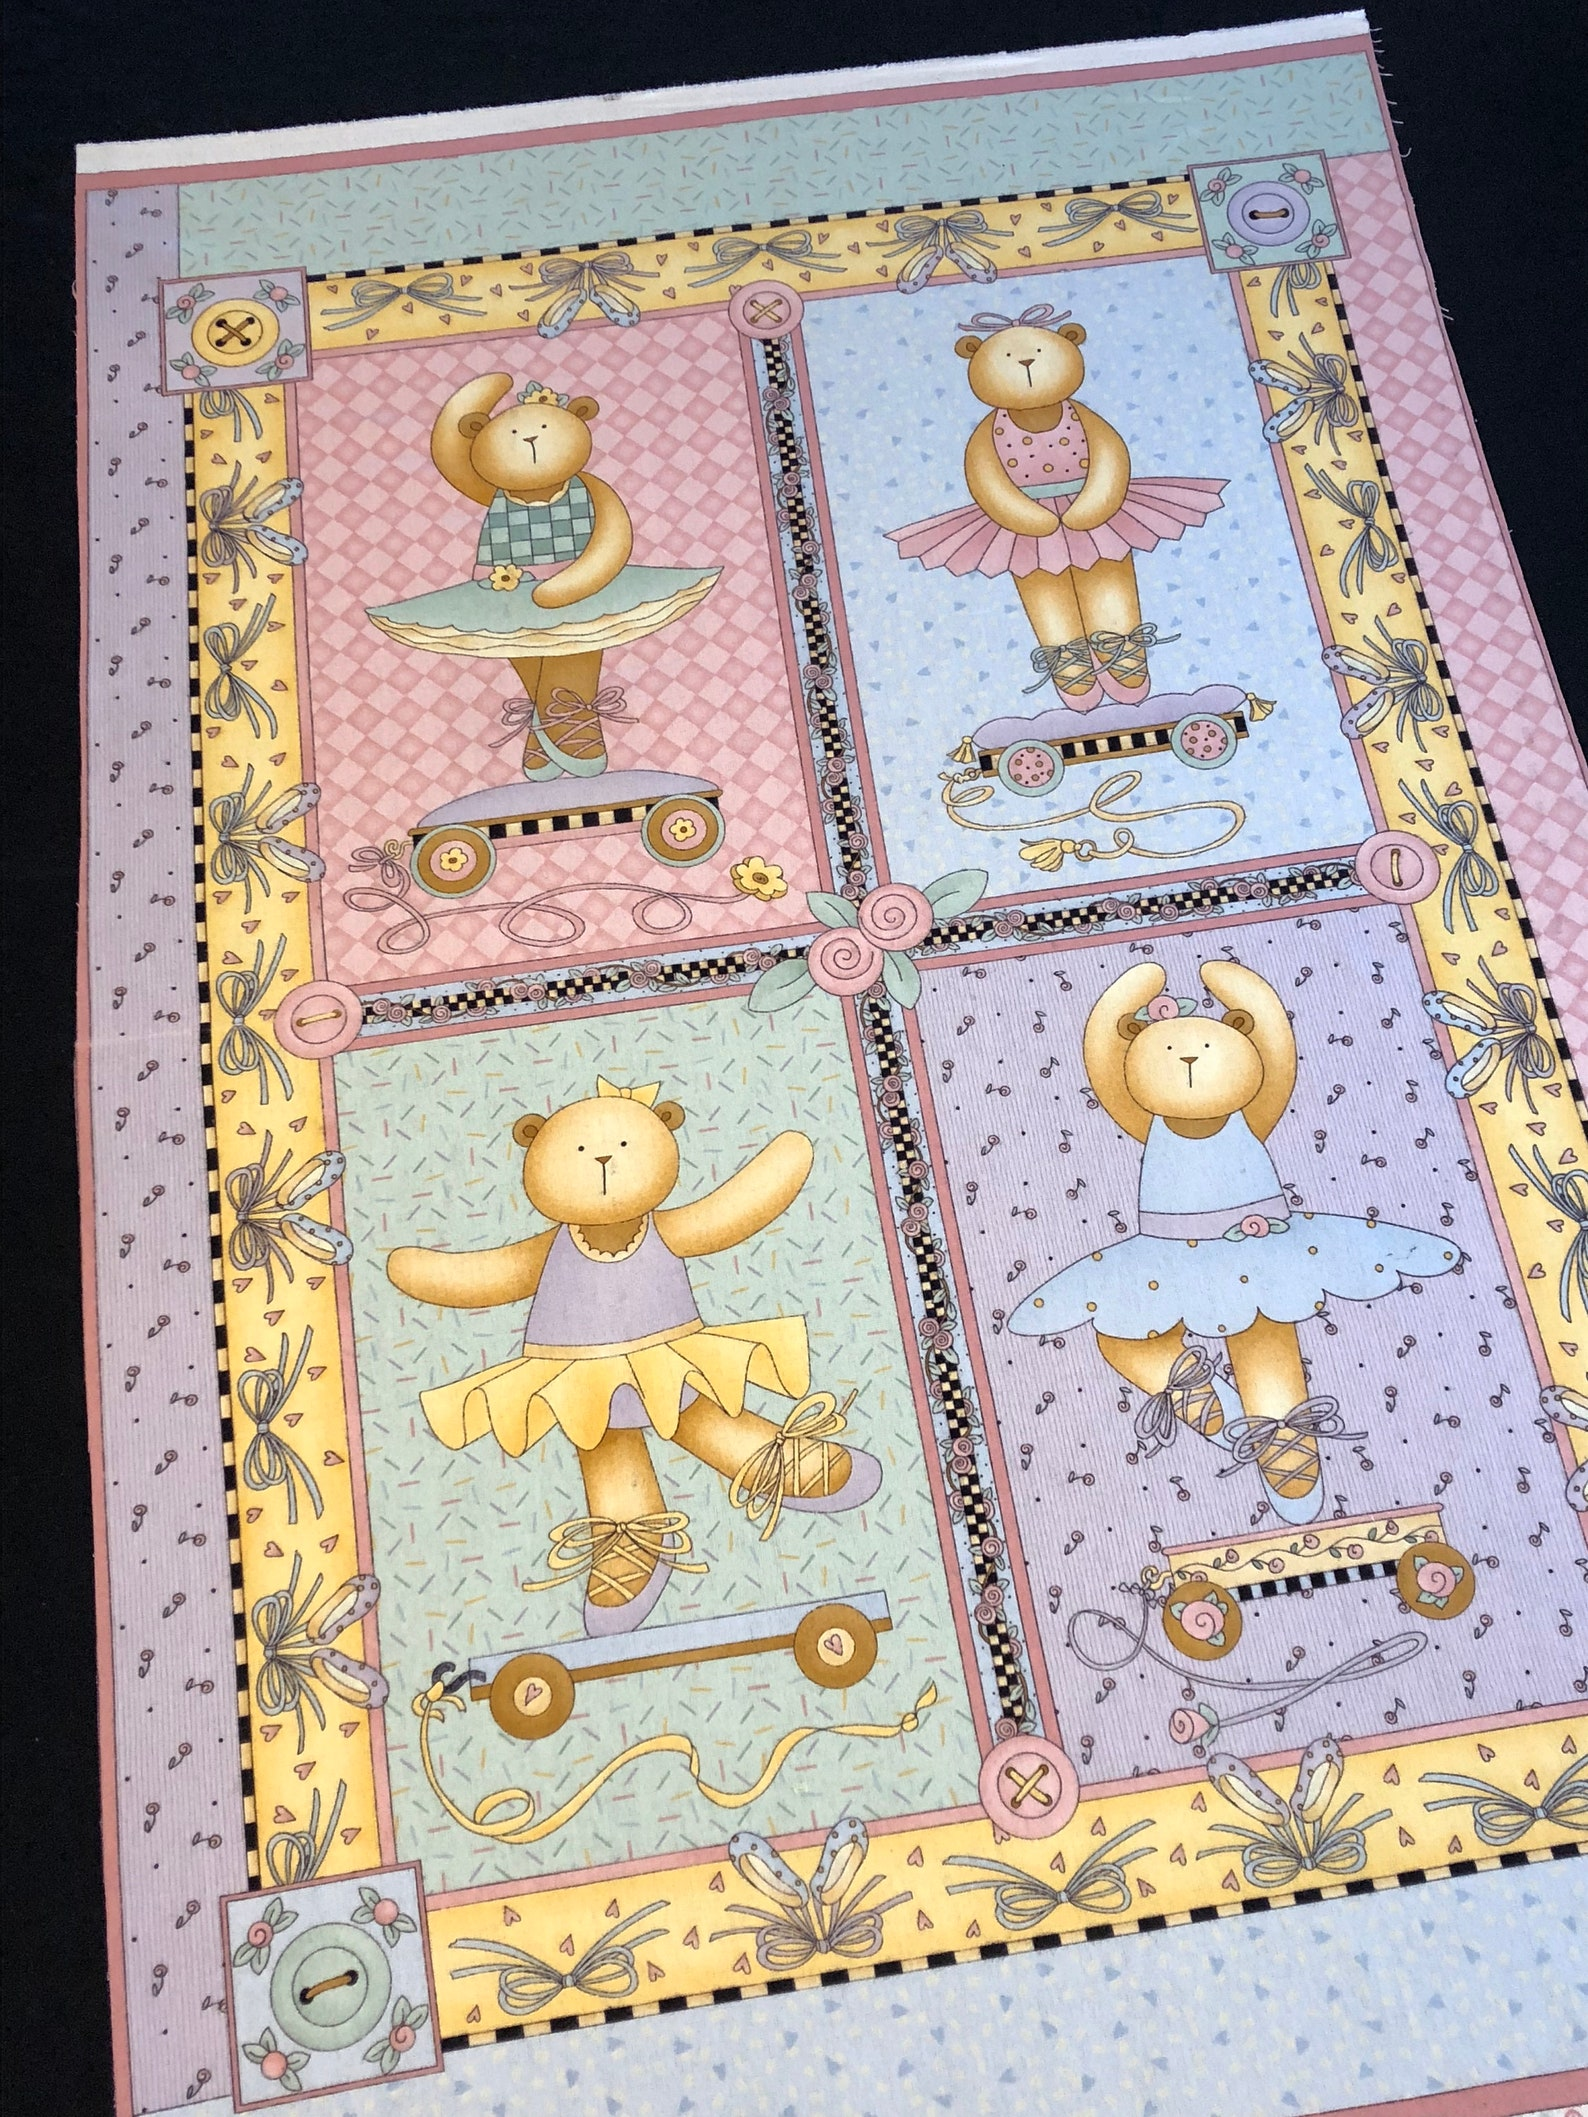 quilt kit ballerina dancing girl bears, top back and binding, ballet dancing, teddy bears bows buttons, baby girl blanket, pink